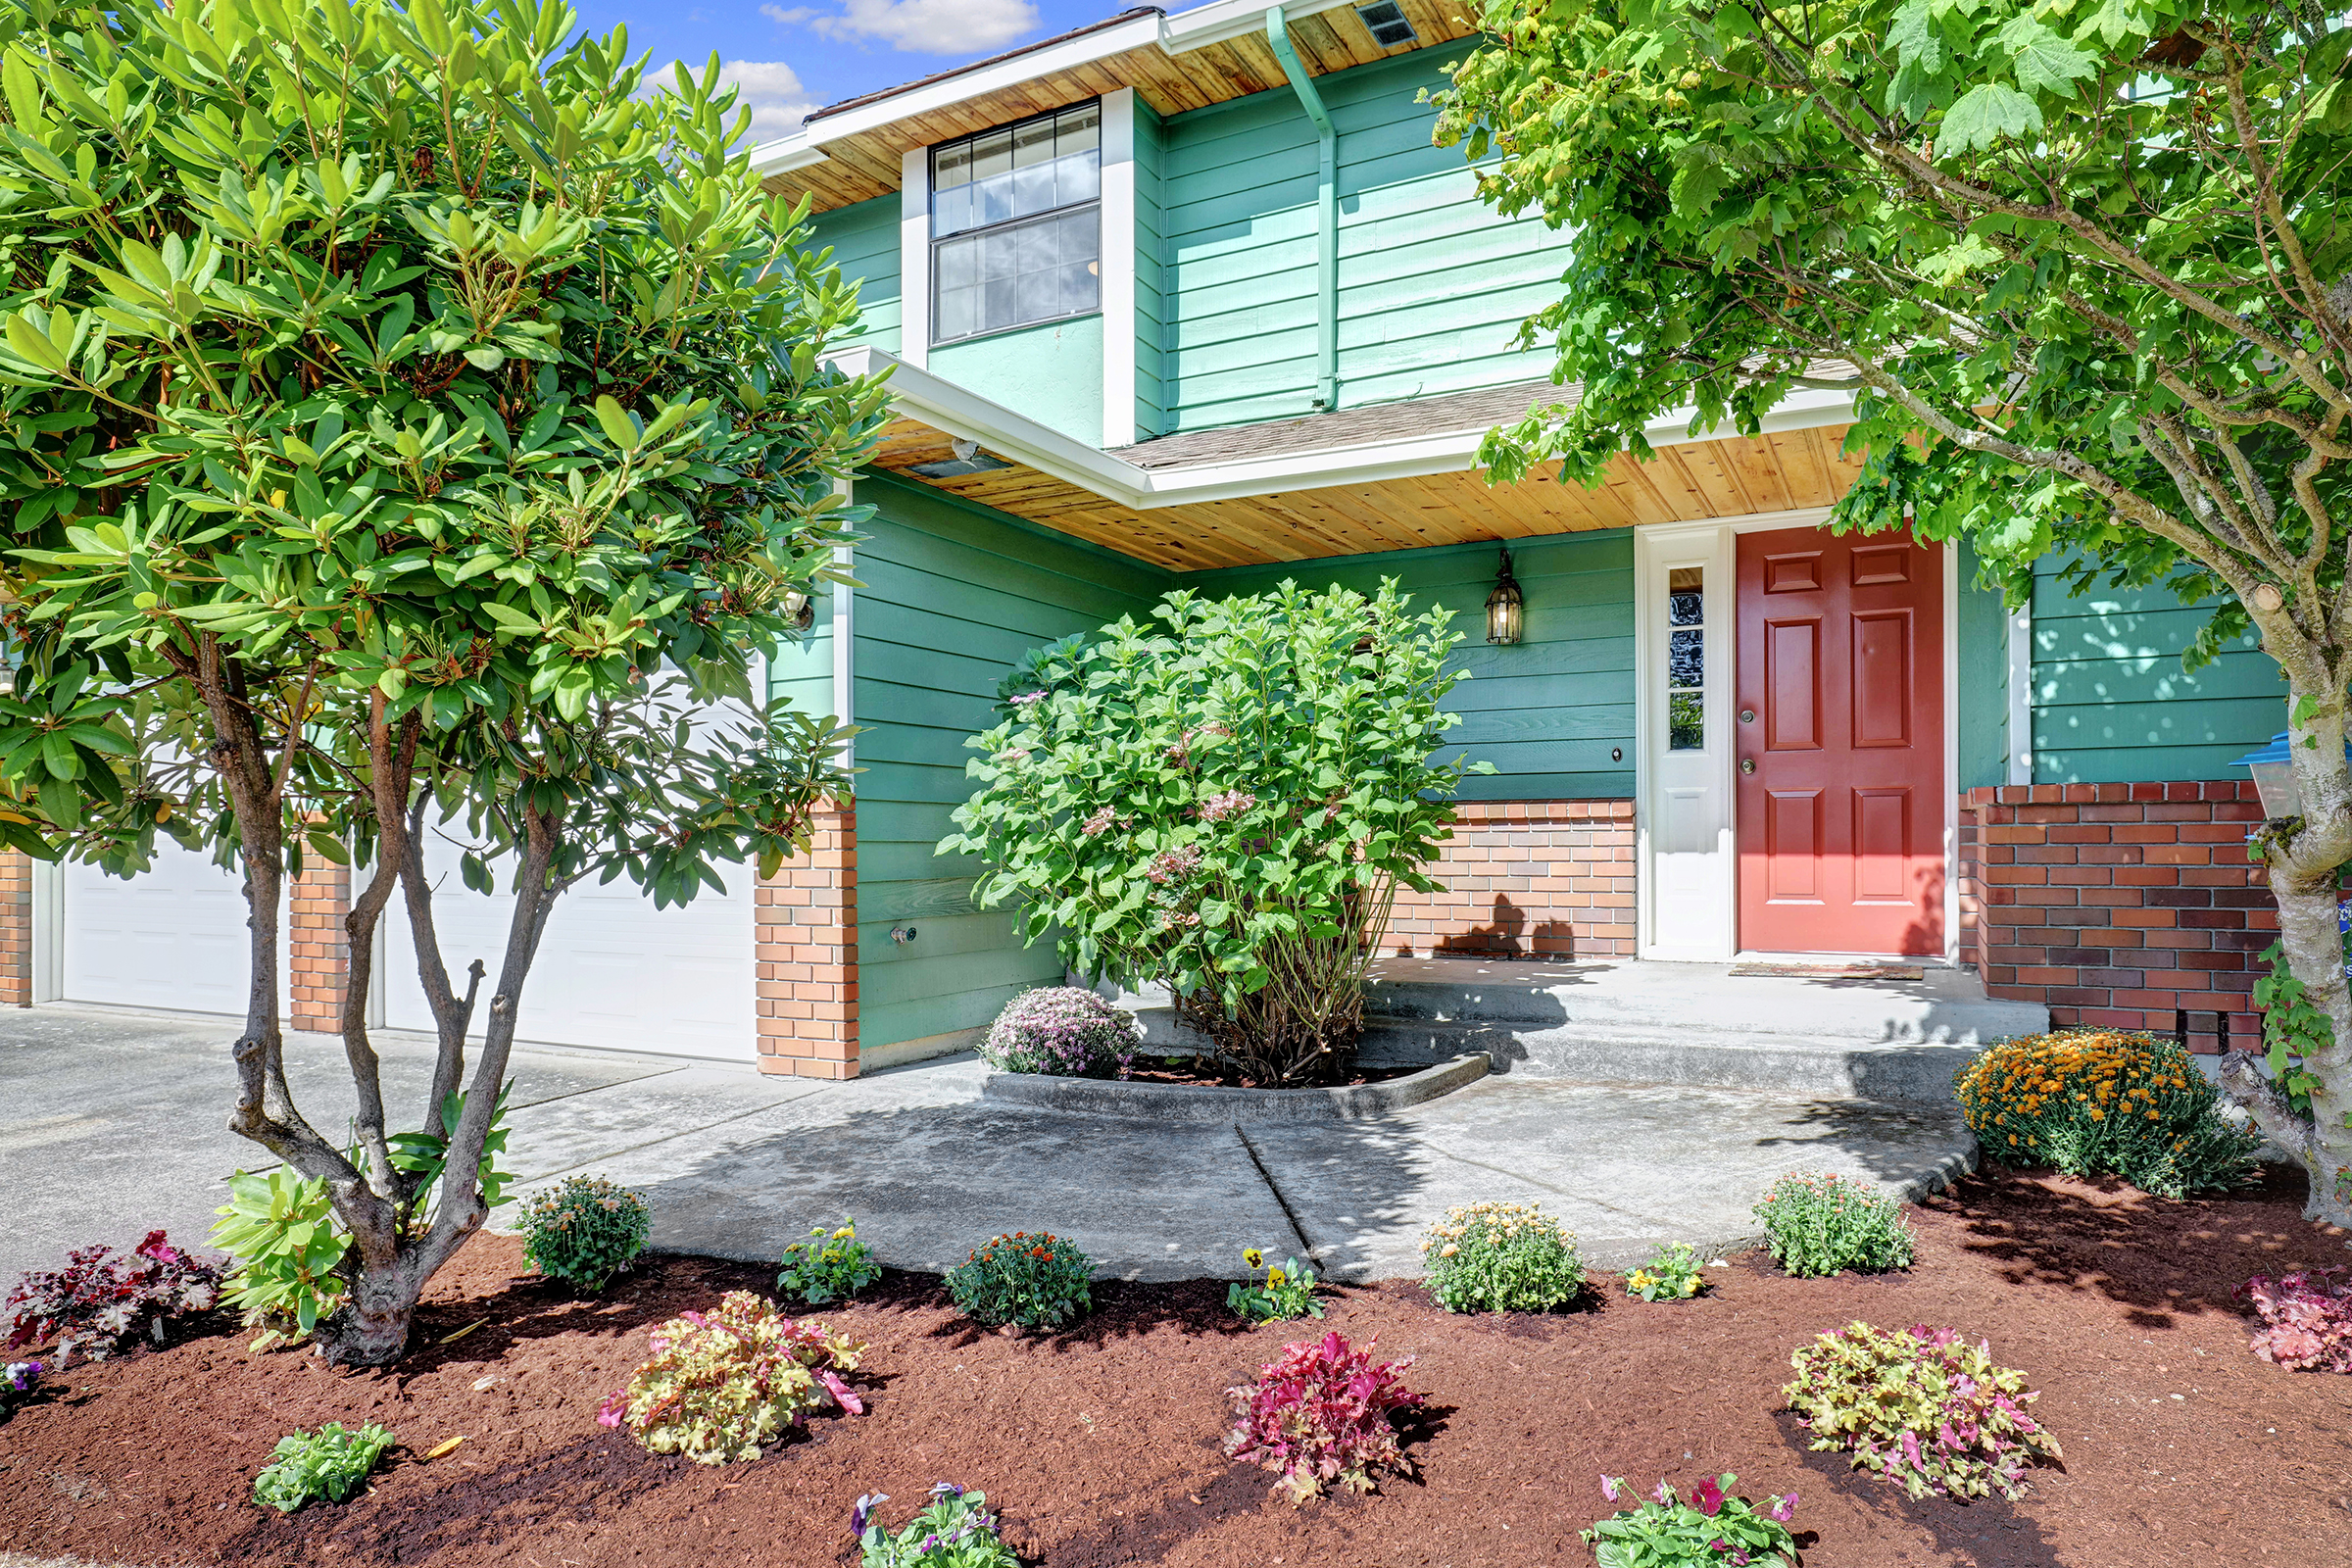 Easy Street, Everett - $435,000